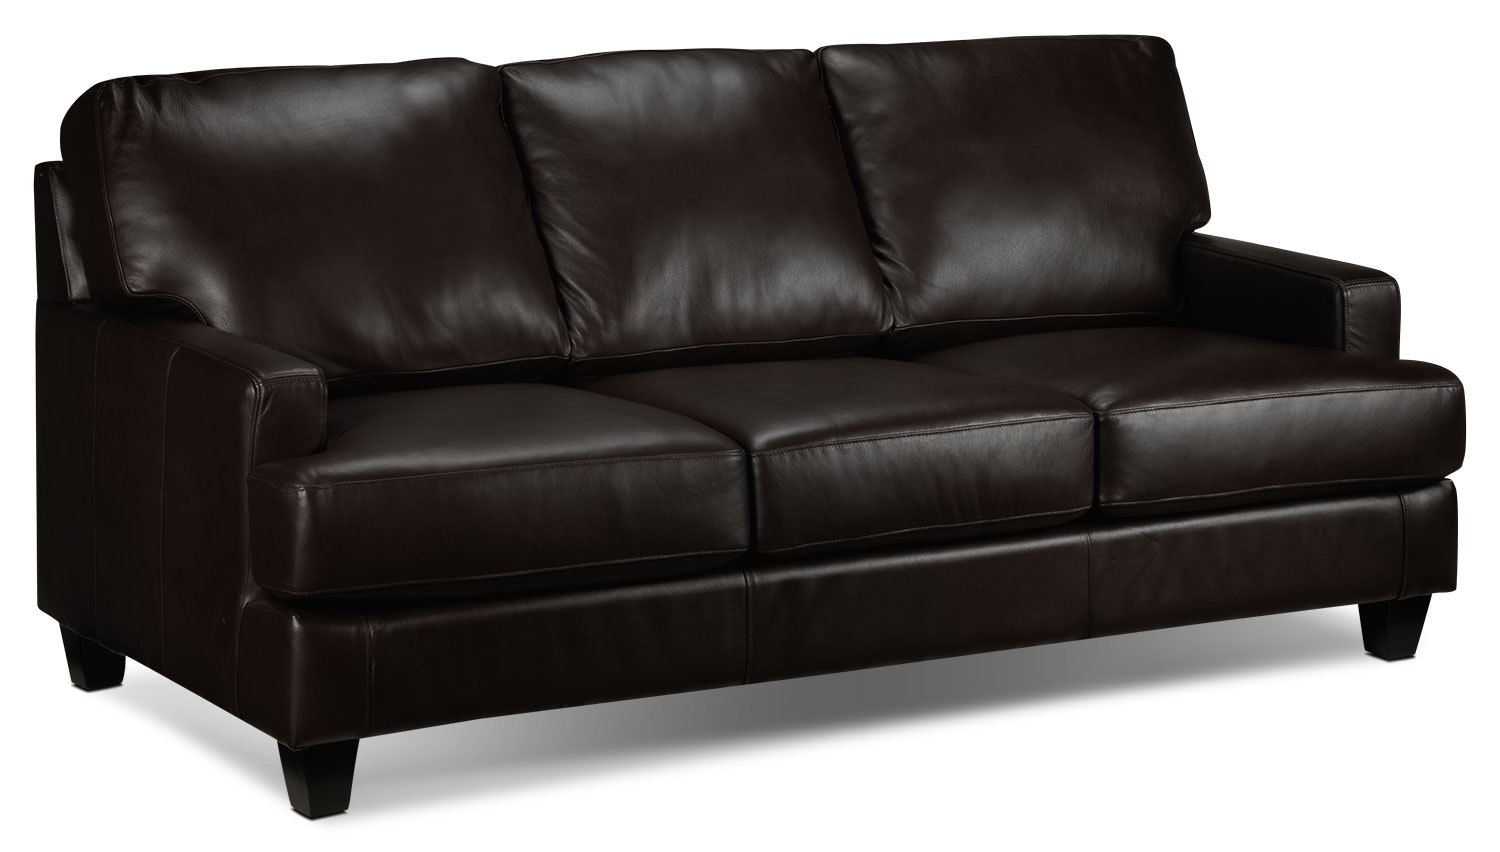 Living Room Furniture - Janie Sofa - Coffee